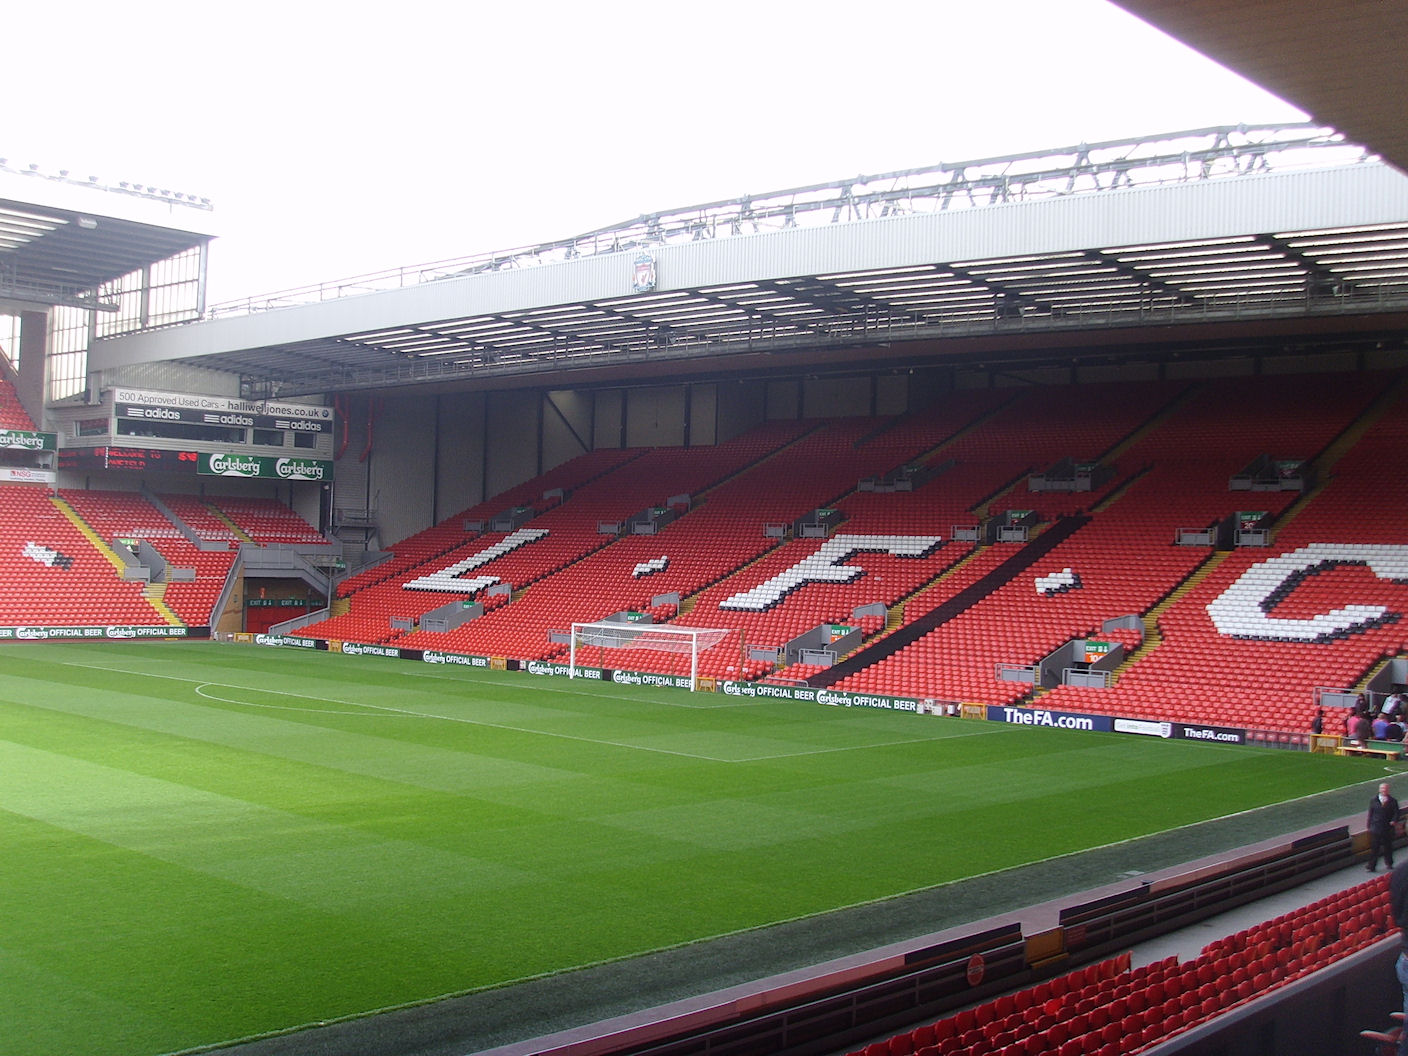 File:The Kop, Anfield.jpg